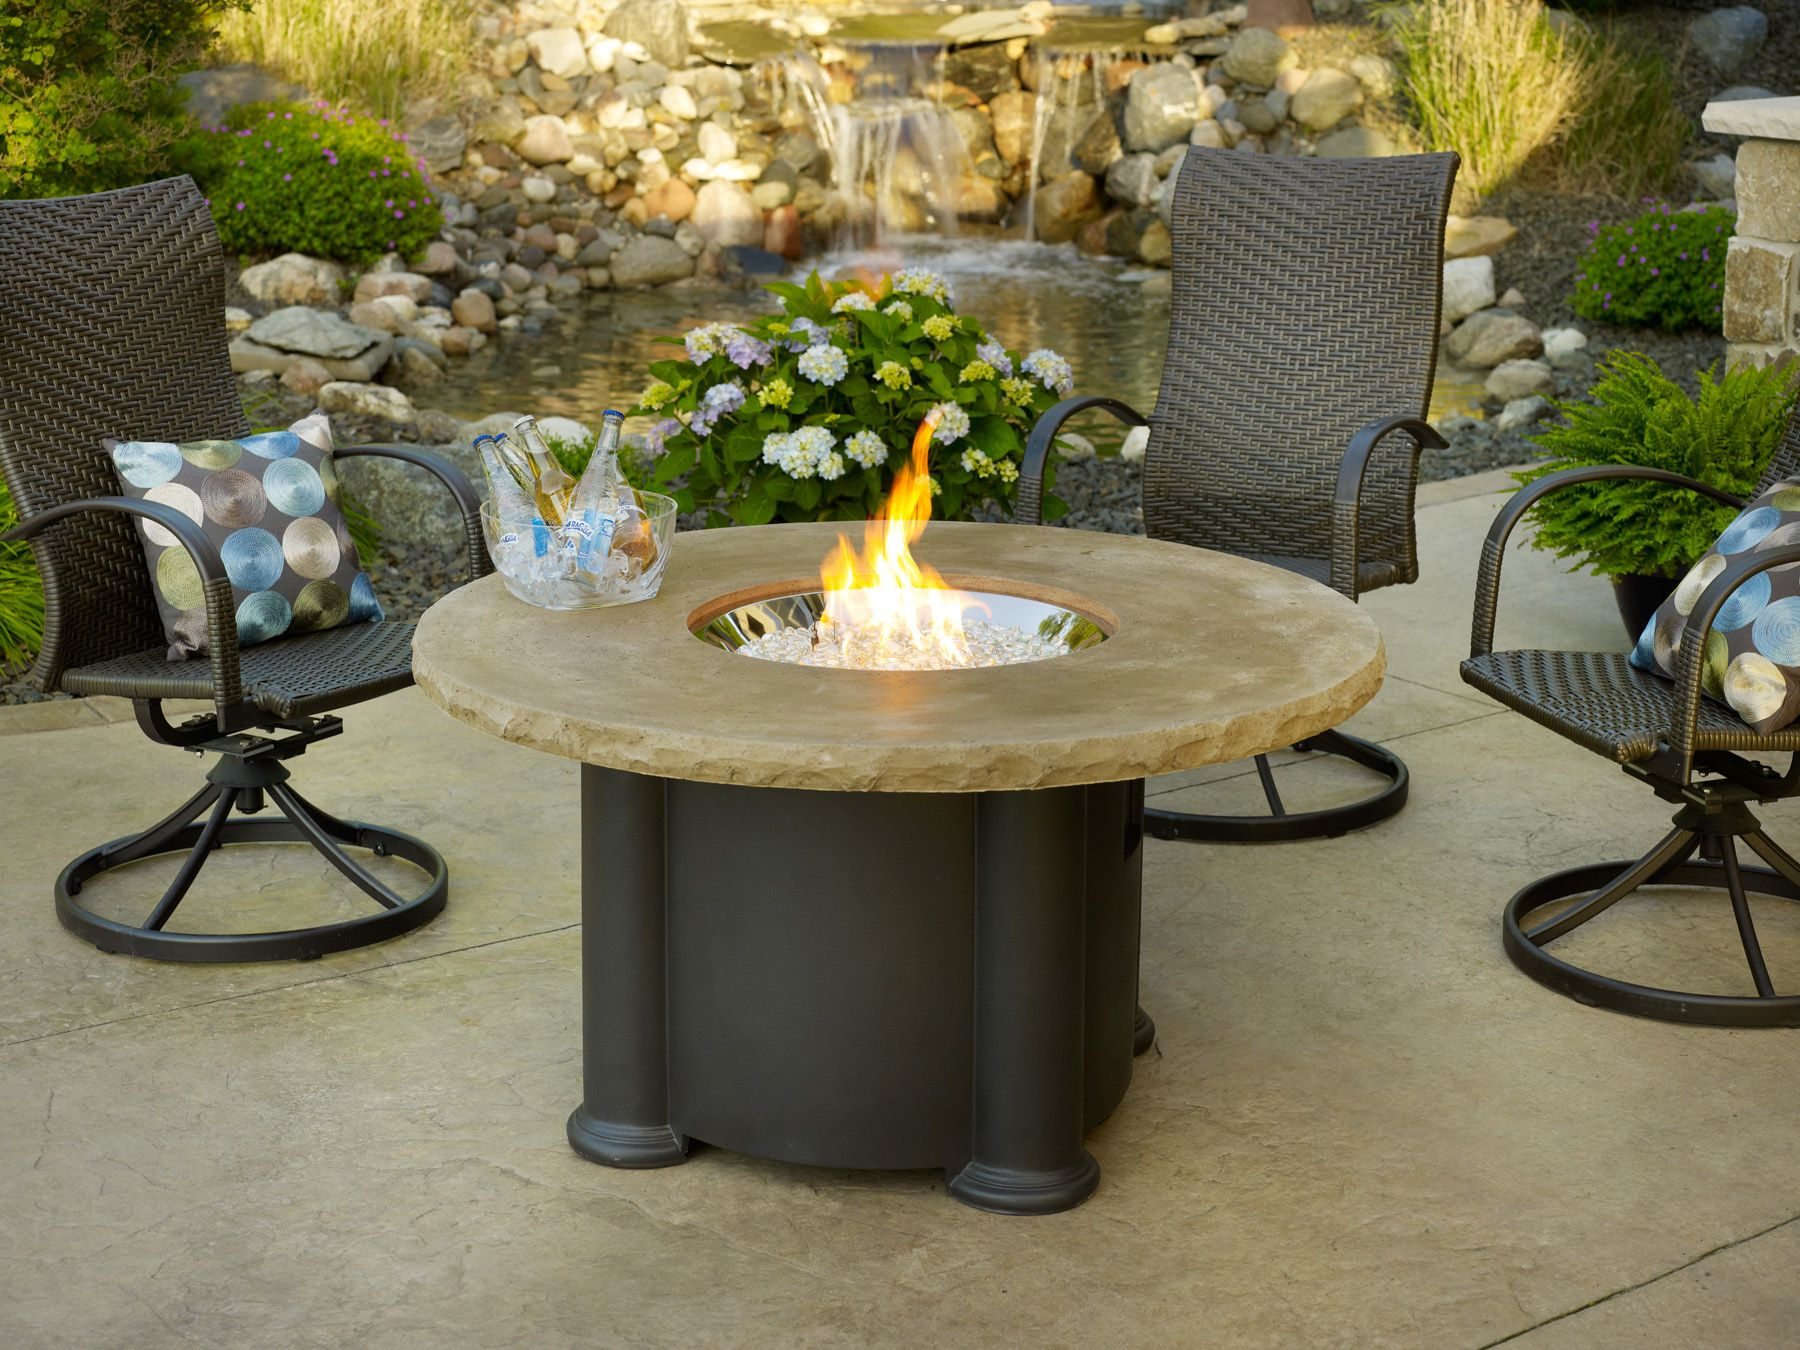 Outdoor GreatRoom 48 In. Colonial Fire Pit Table   Propane Fire Pits At Fire  Pits